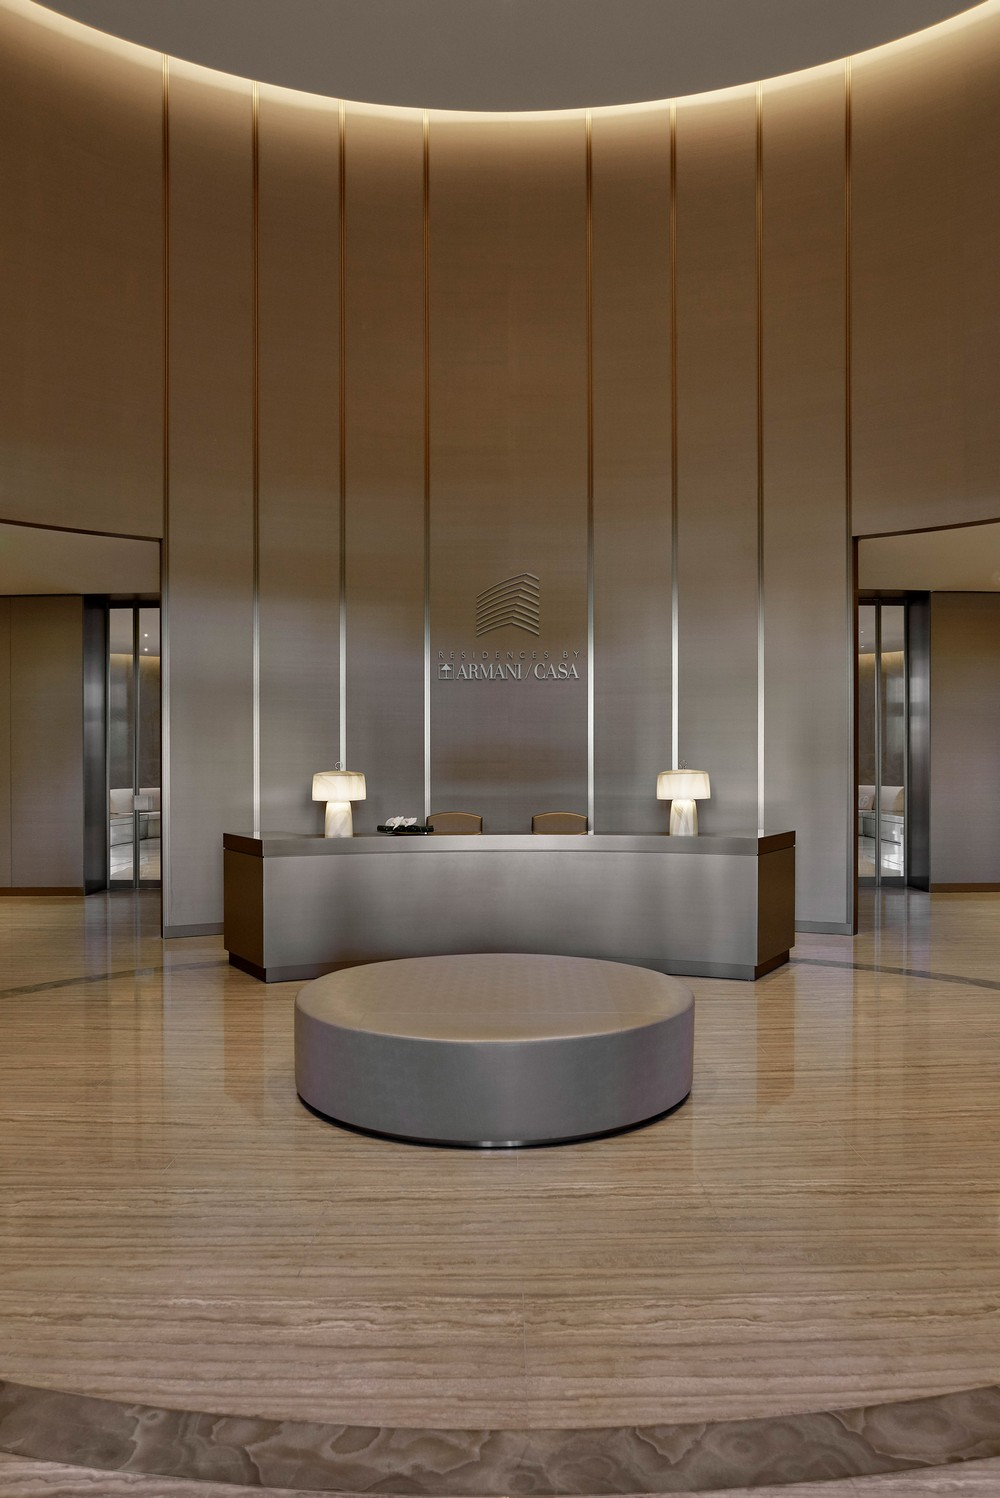 Luxury Residences The Grandiose the Armani-Casa Tower in Florida 8 luxury residences Luxury Residences: The Grandiose Armani/Casa Tower in Florida Luxury Residences The Grandiose the Armani Casa Tower in Florida 8